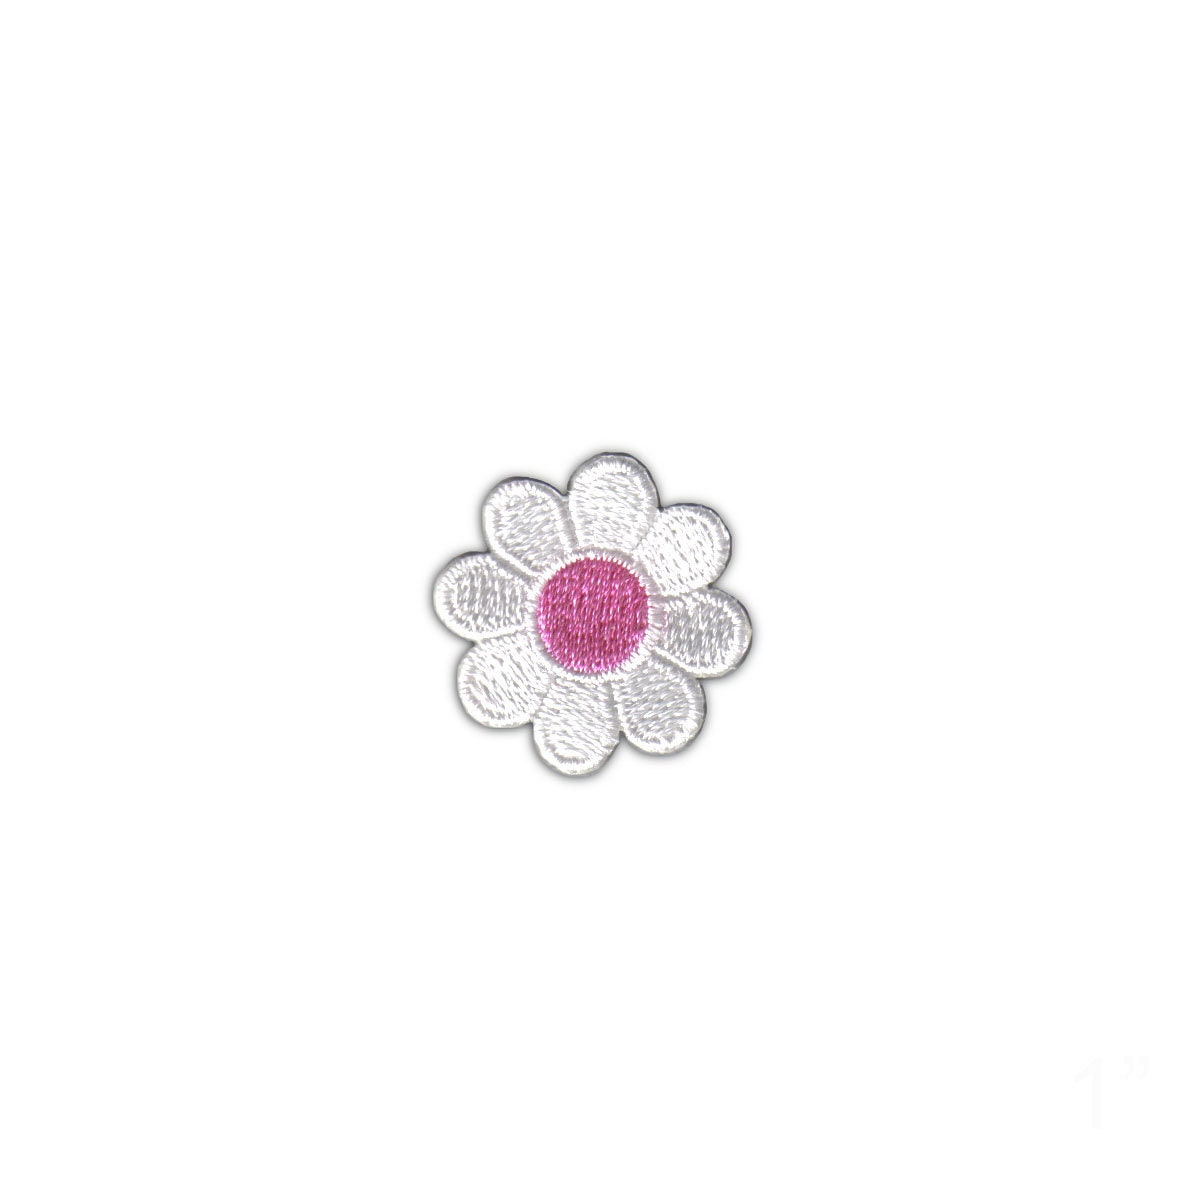 1 Daisy White Petals Pink Center Patch Flower Cute Etsy